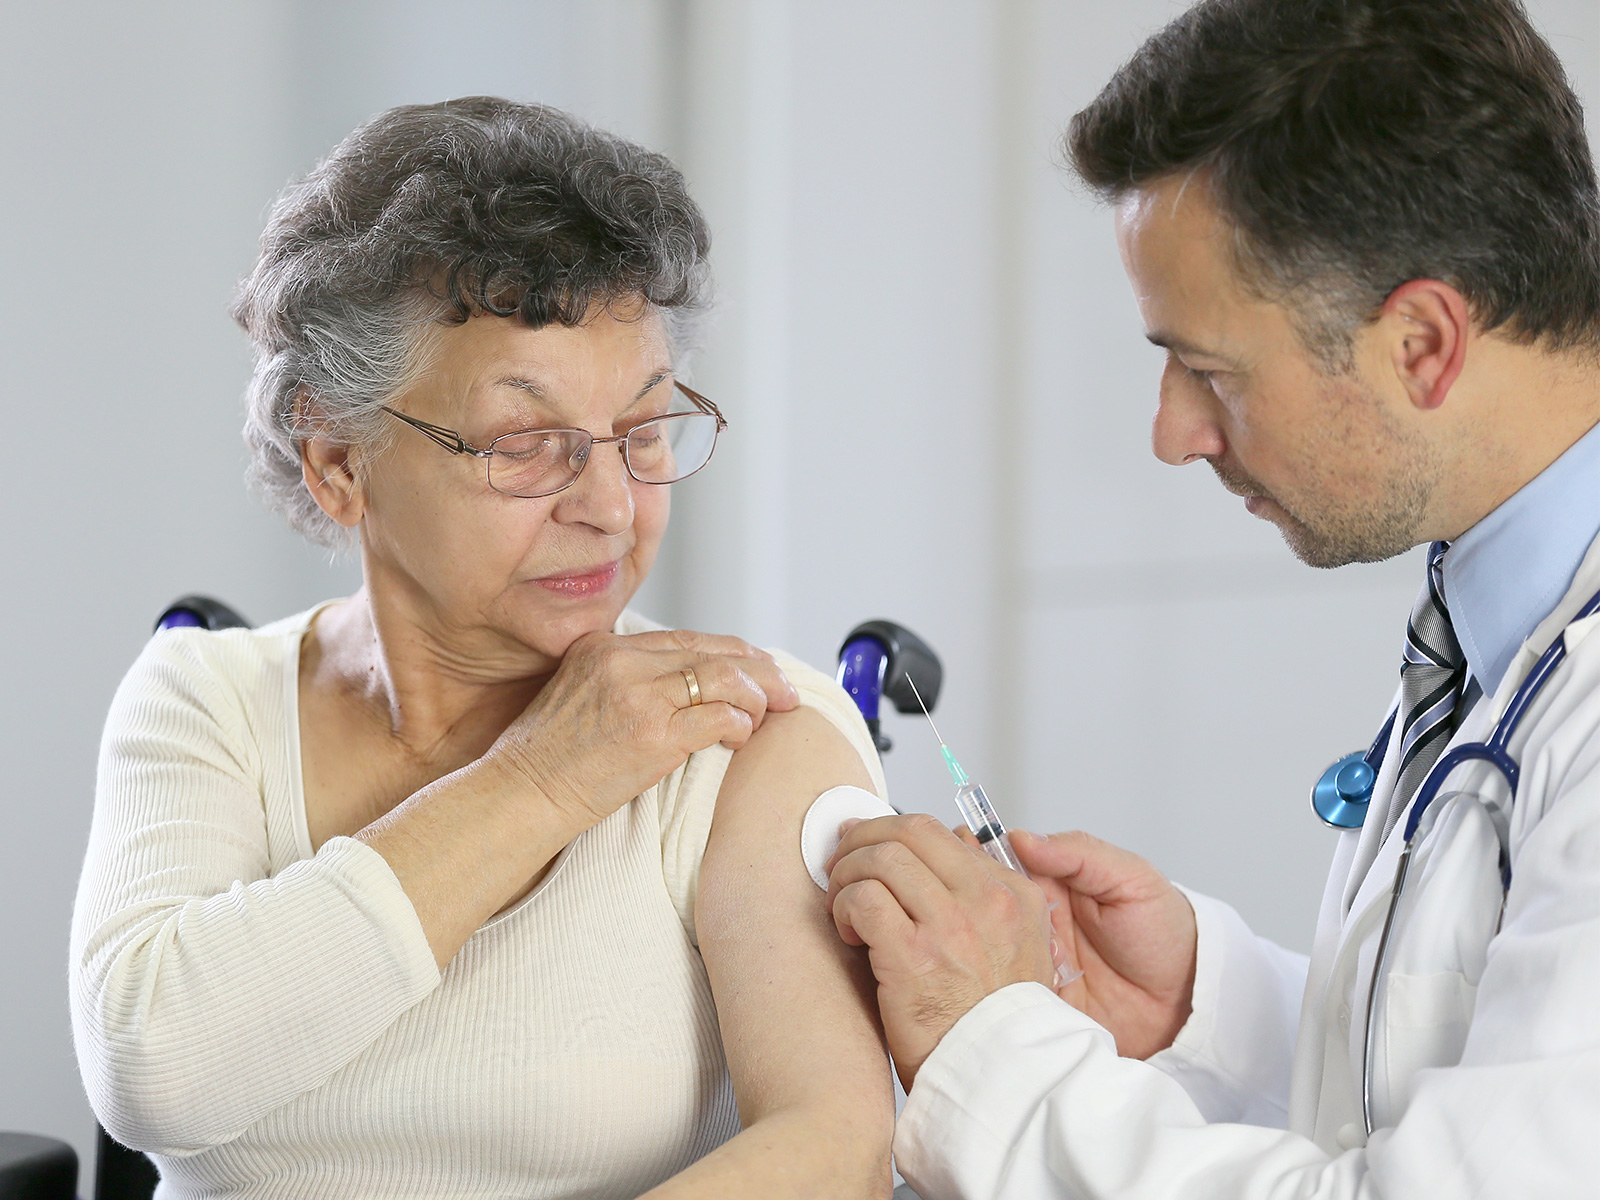 A doctor administers a shot to a patient.